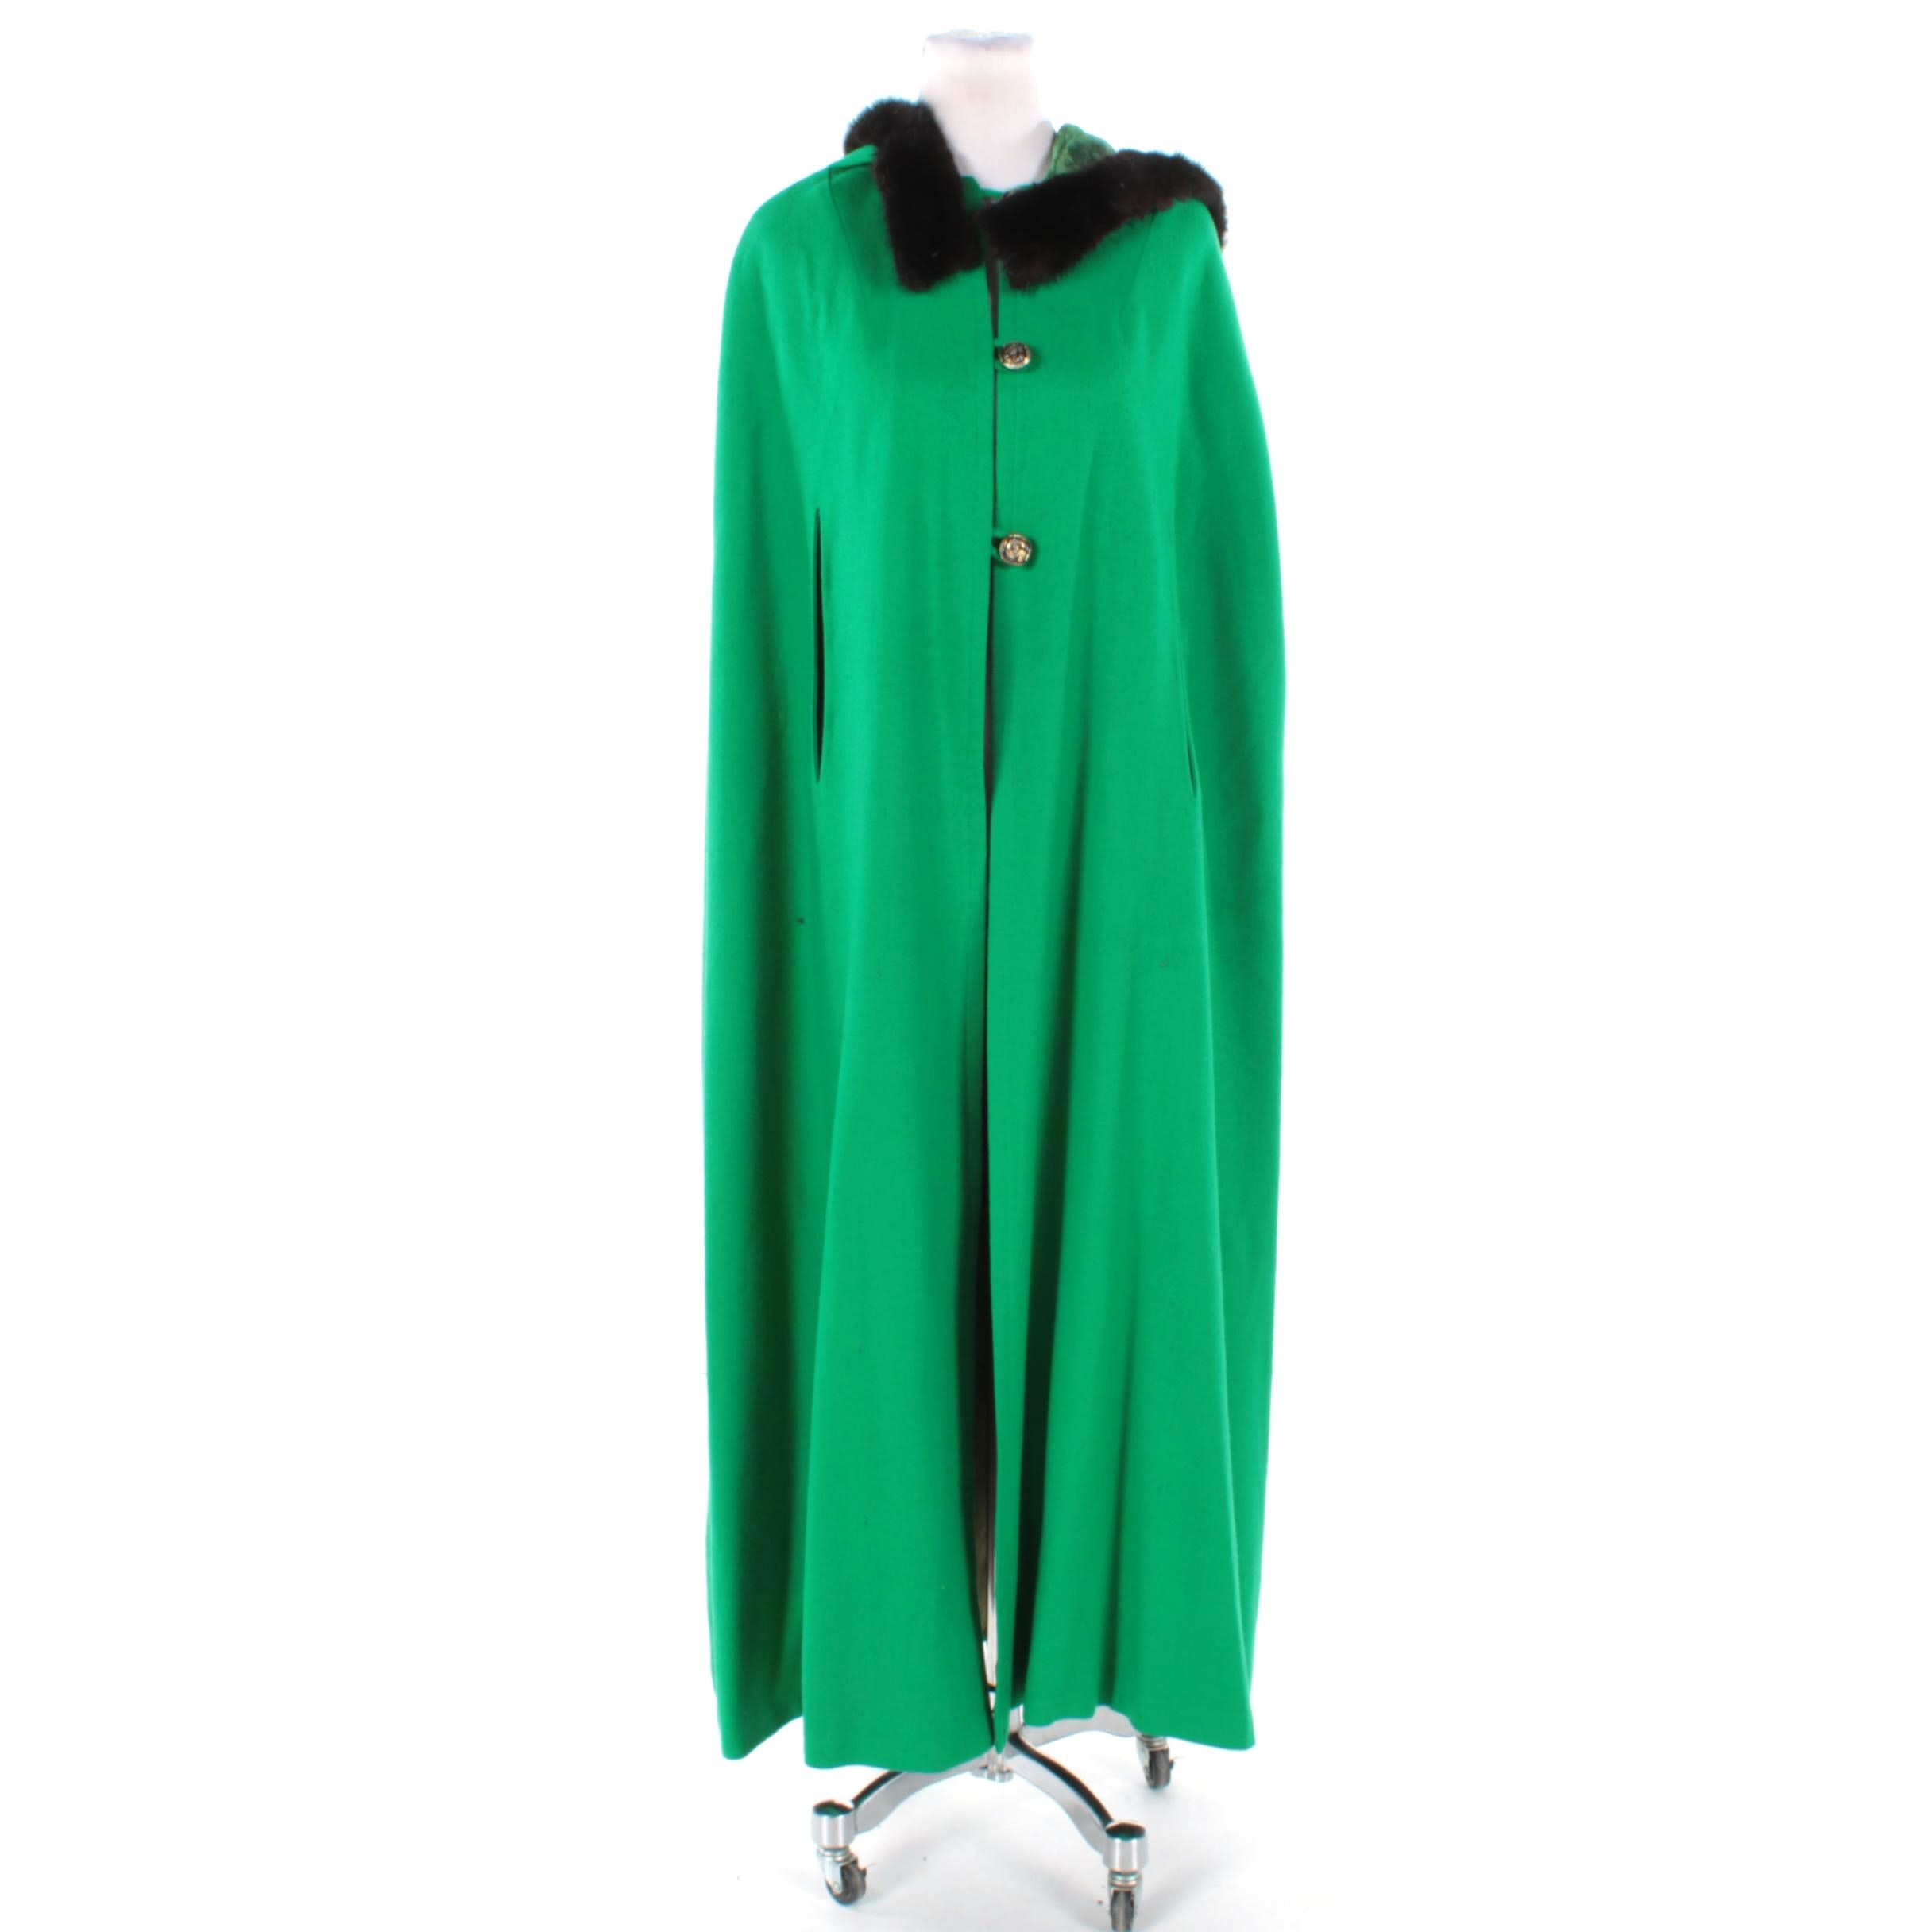 Handmade Green Cape Coat with Mink Trim